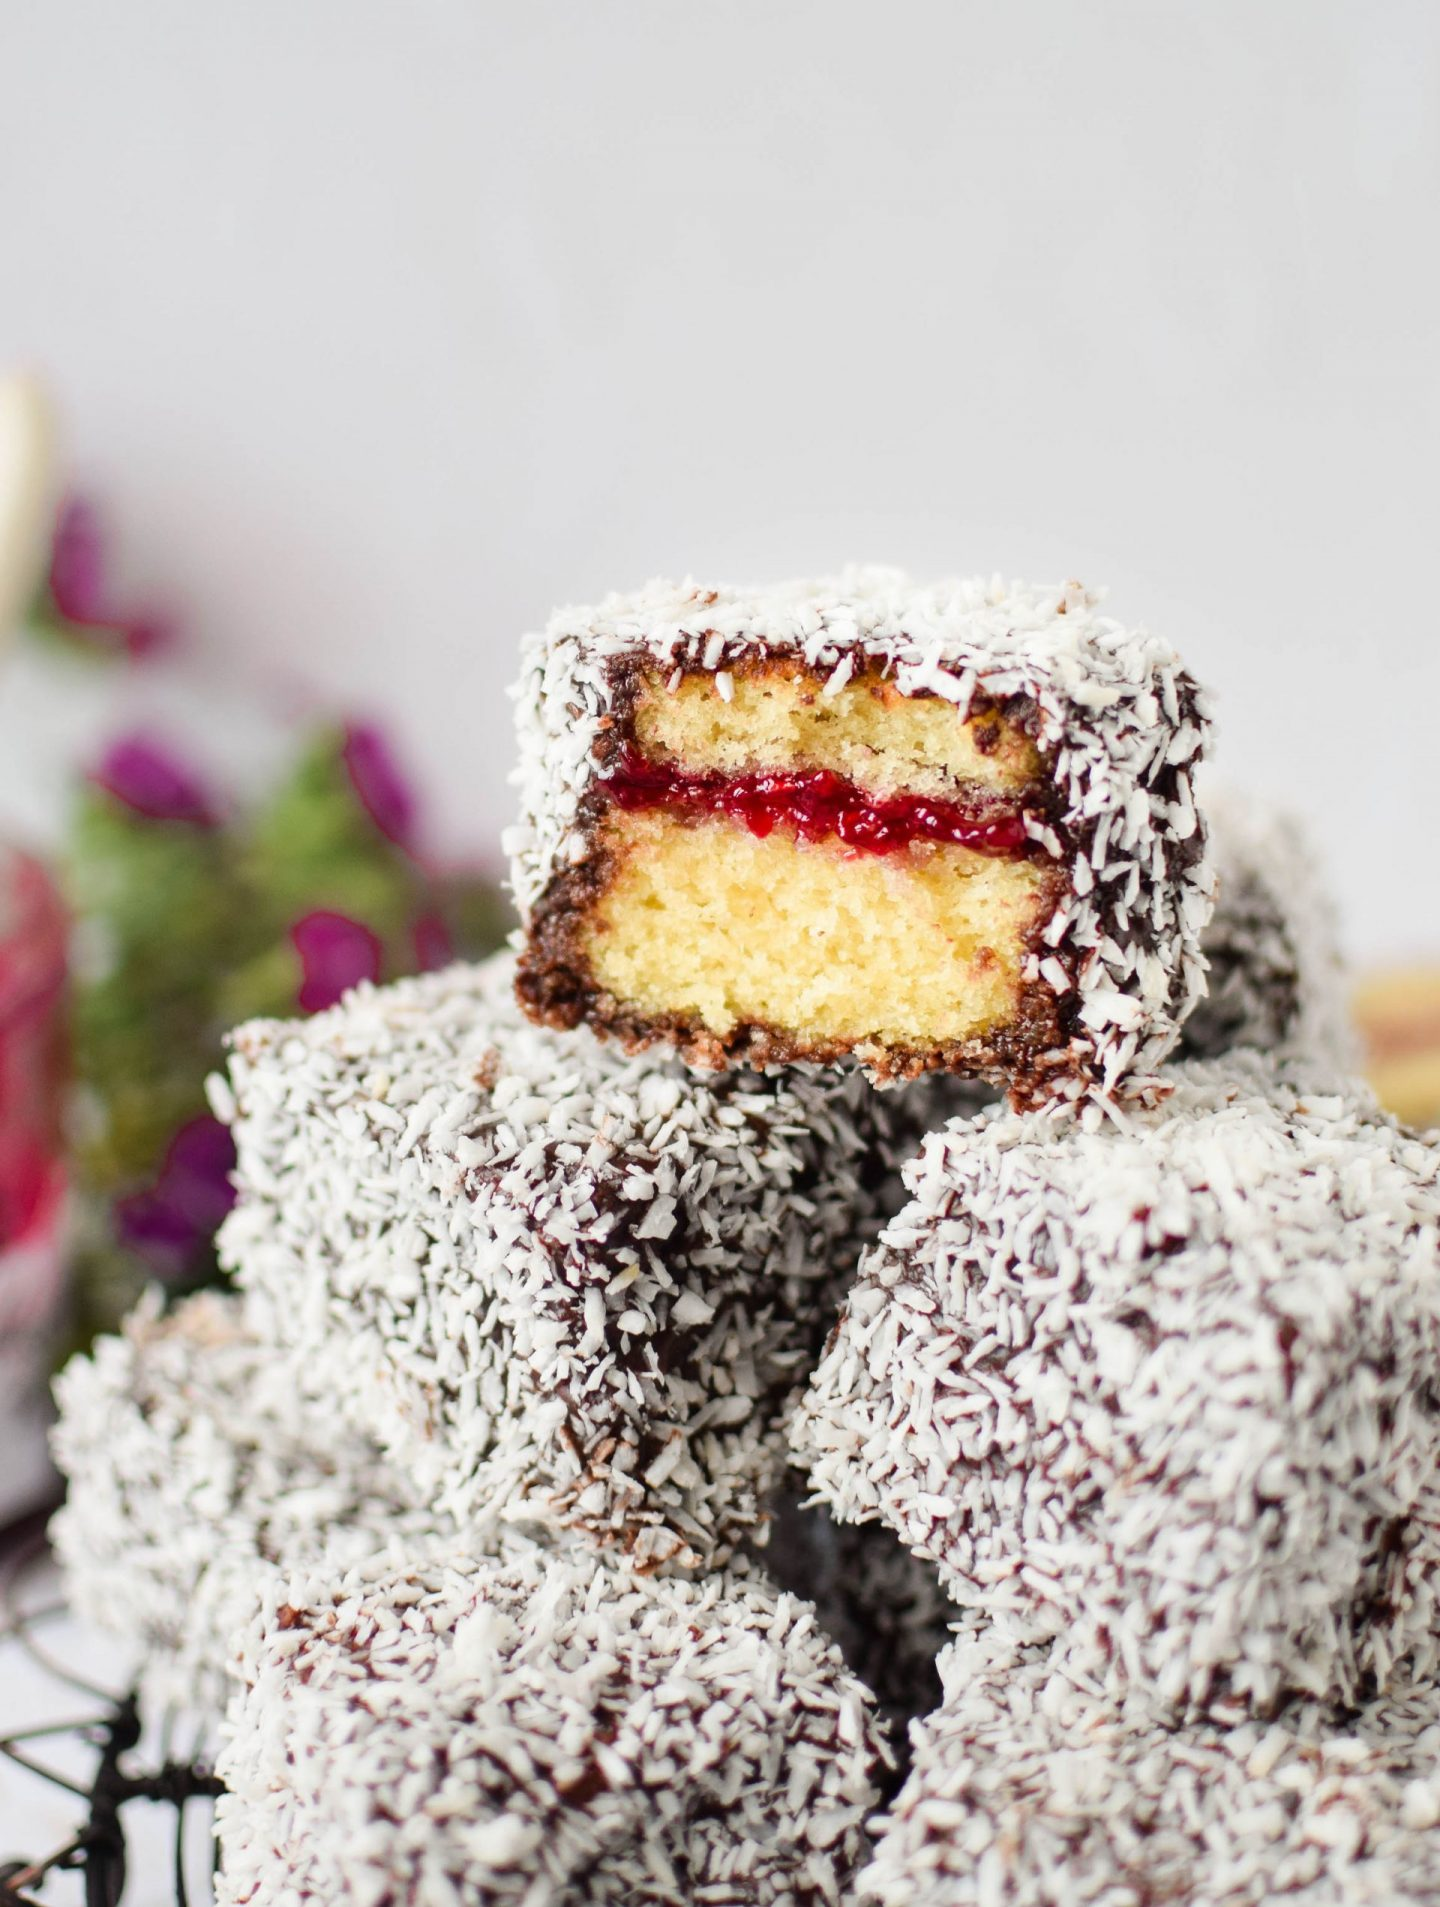 Close up of a cross section of a homemade lamington cake.